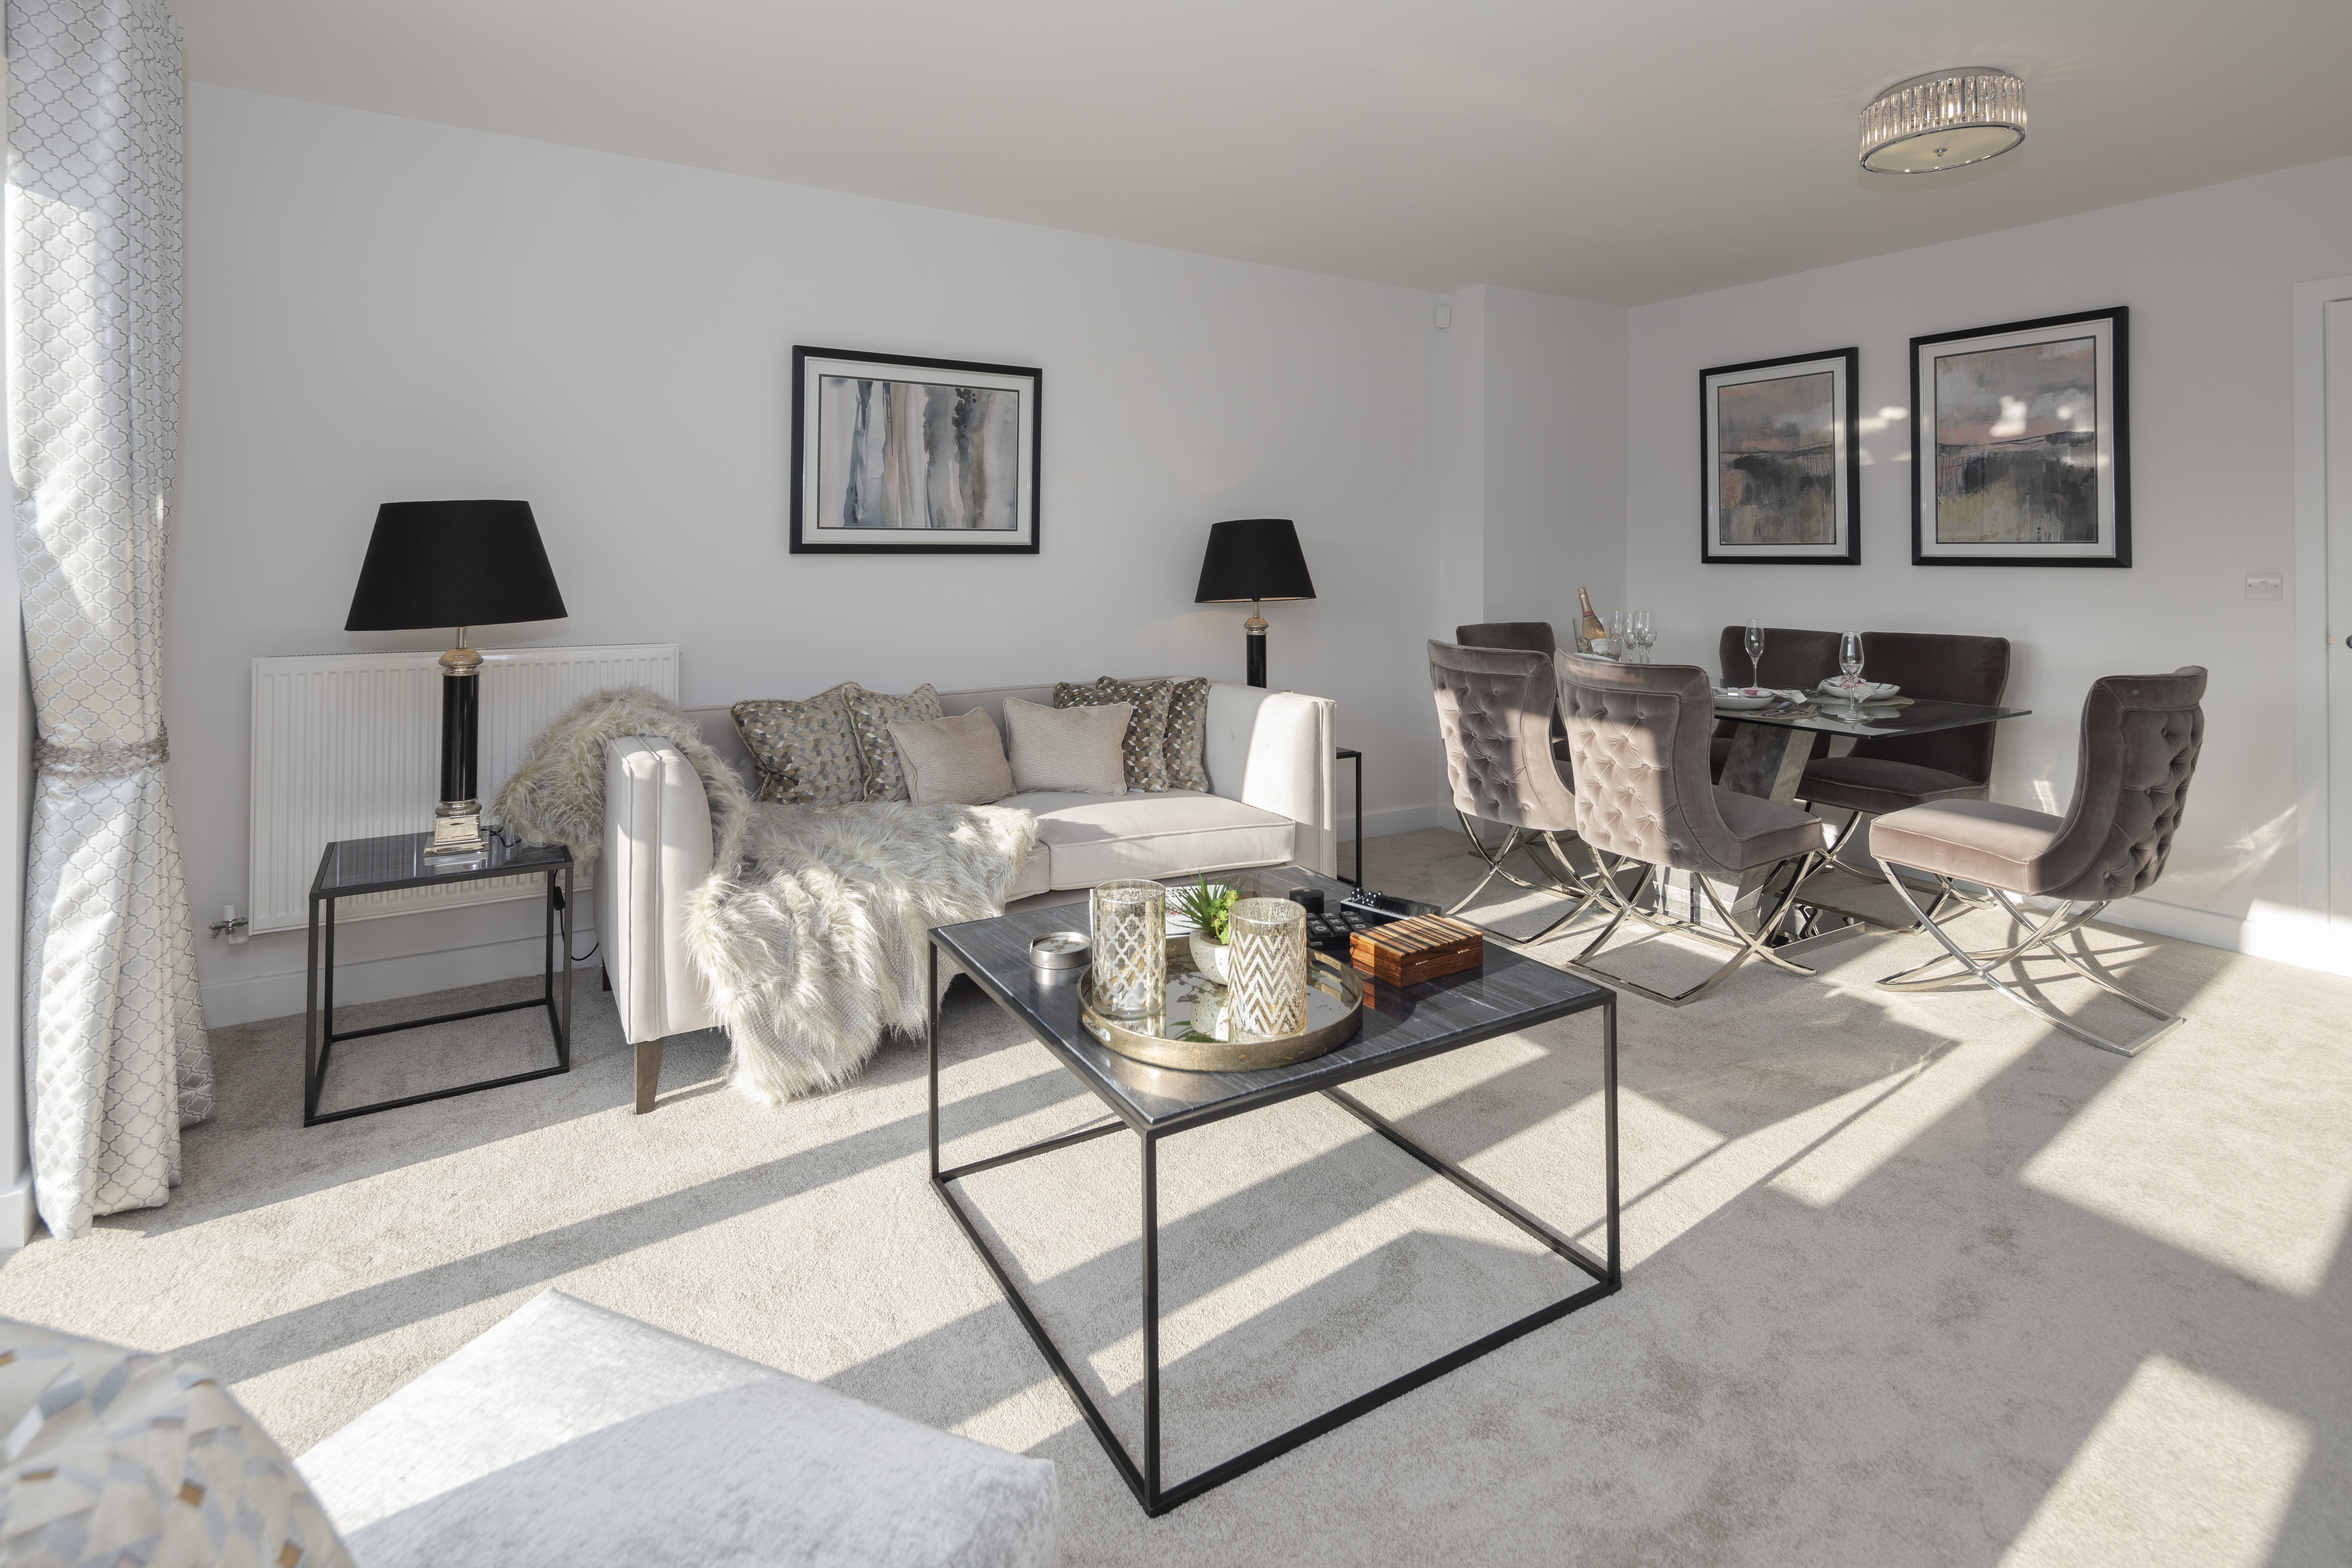 Jubilee Meadows - New townhouse Show Home launching 24th November